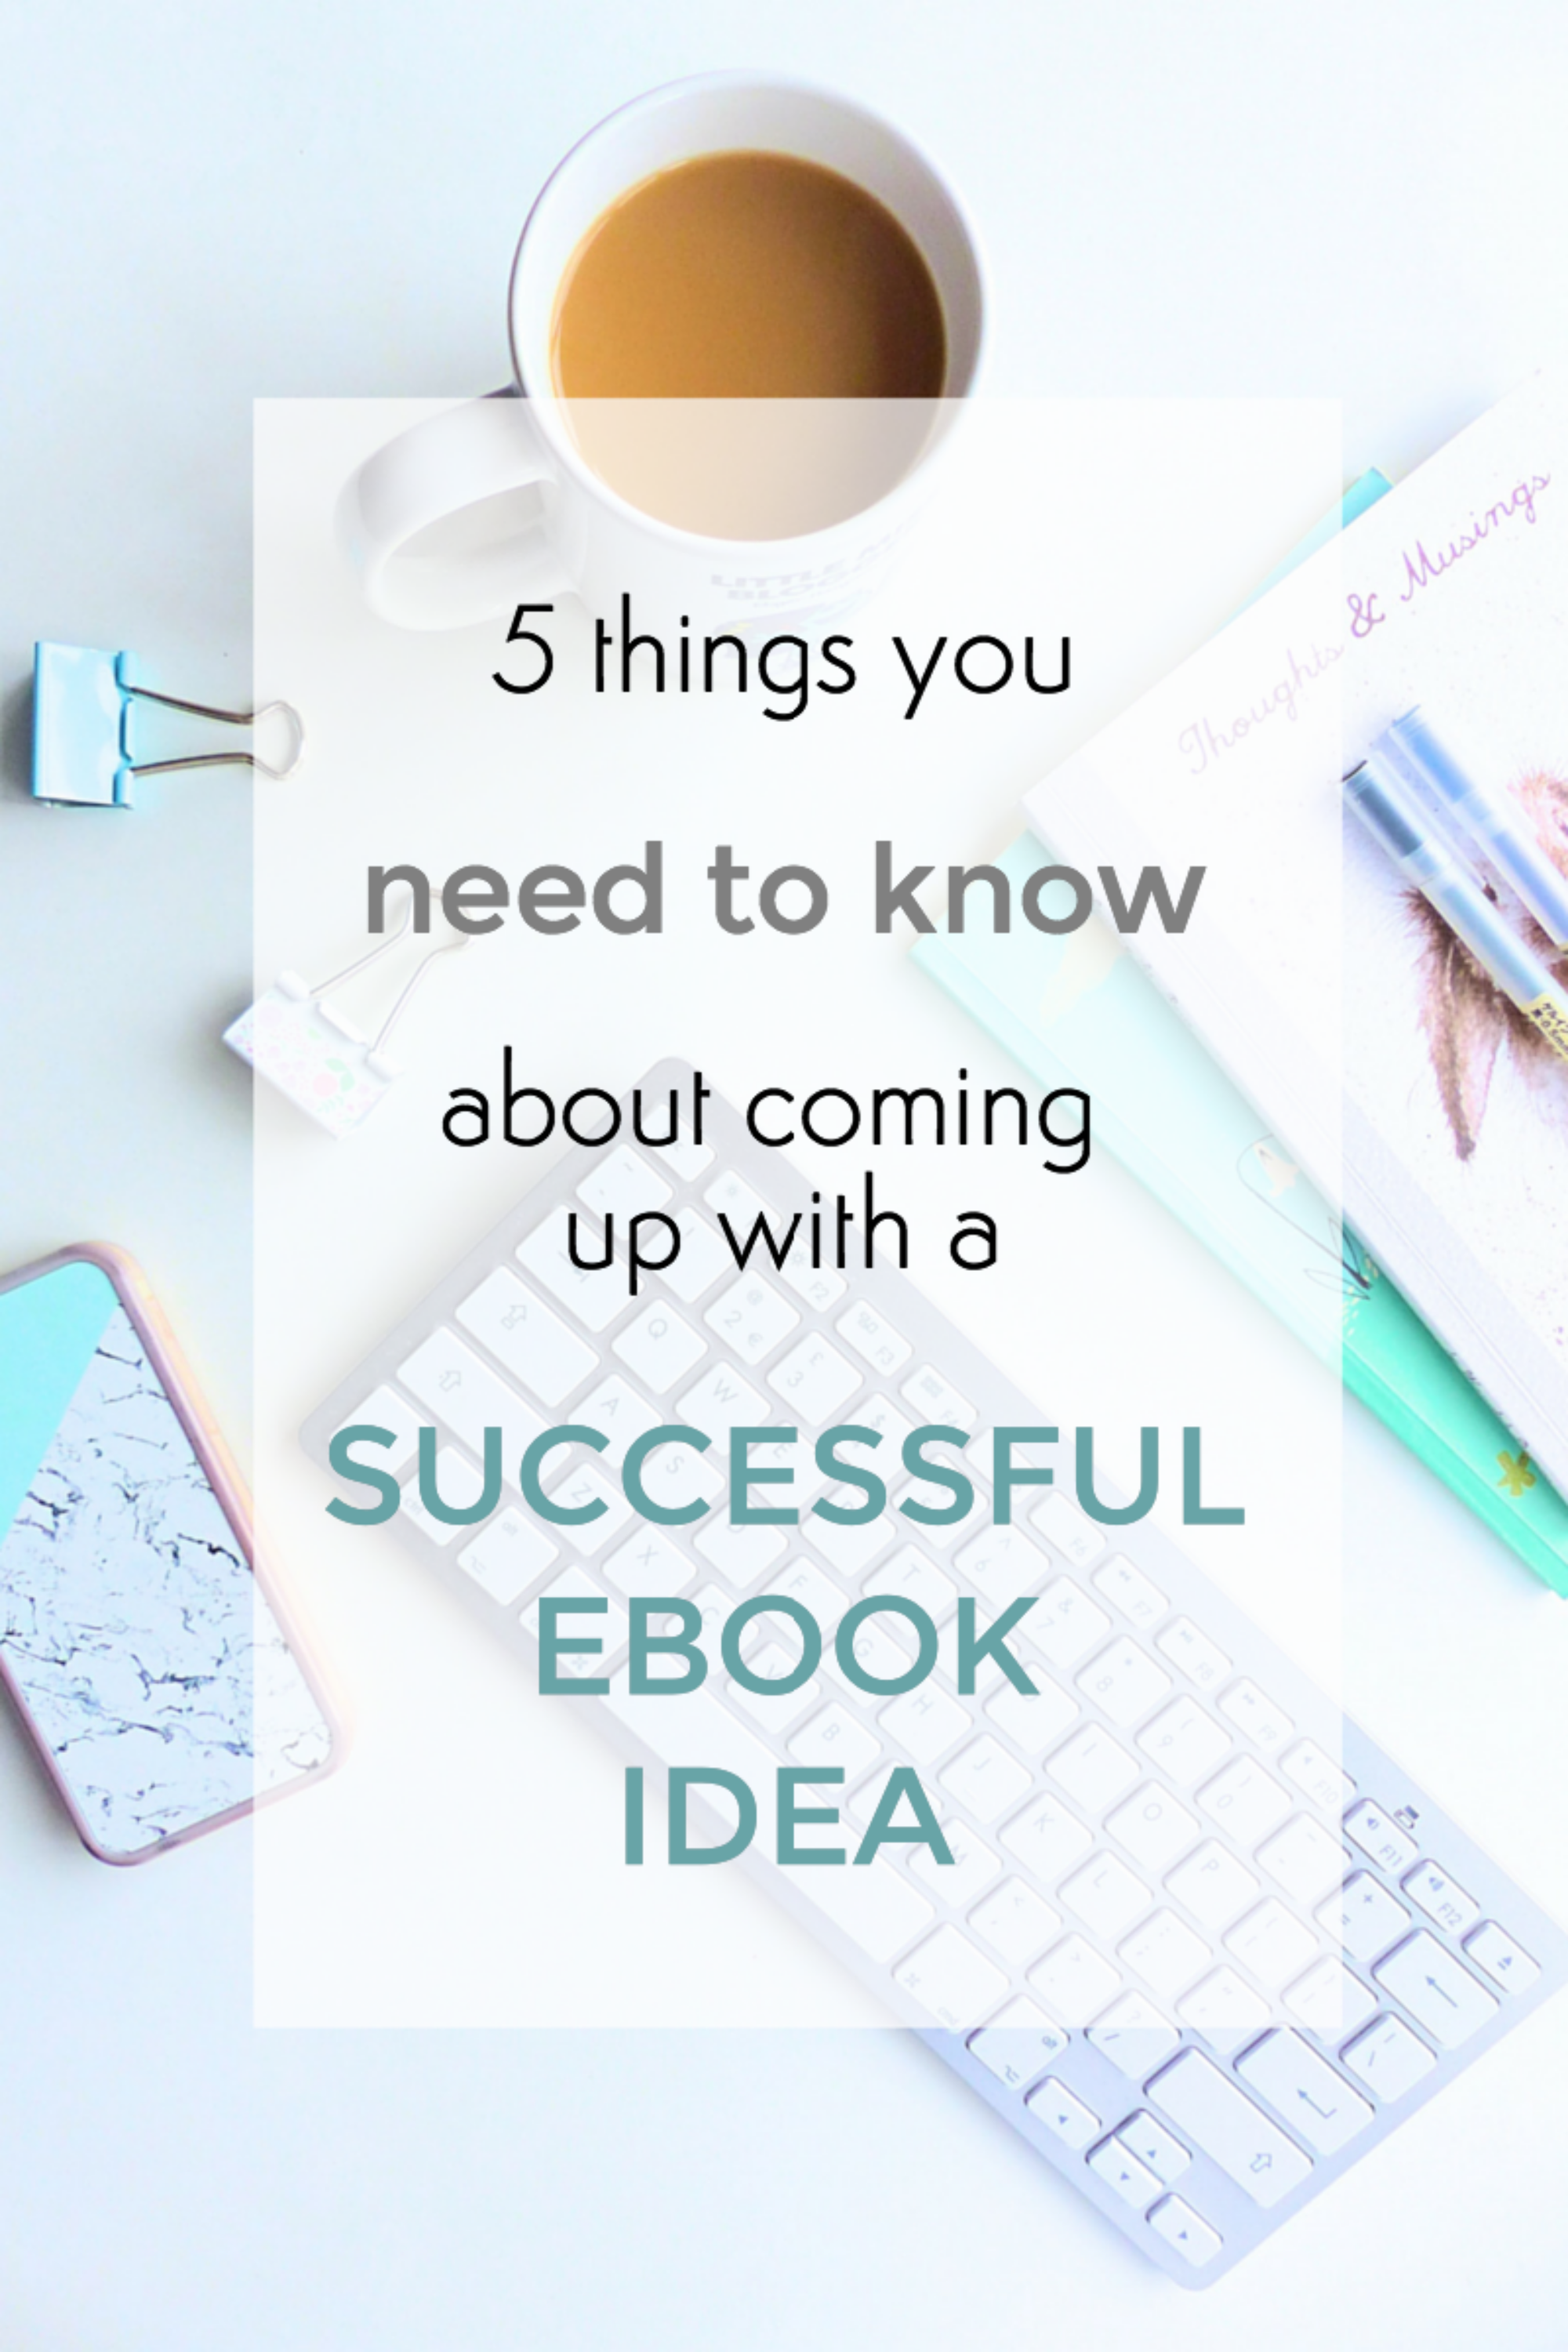 5 things you need to know about coming up with a successful eBook idea